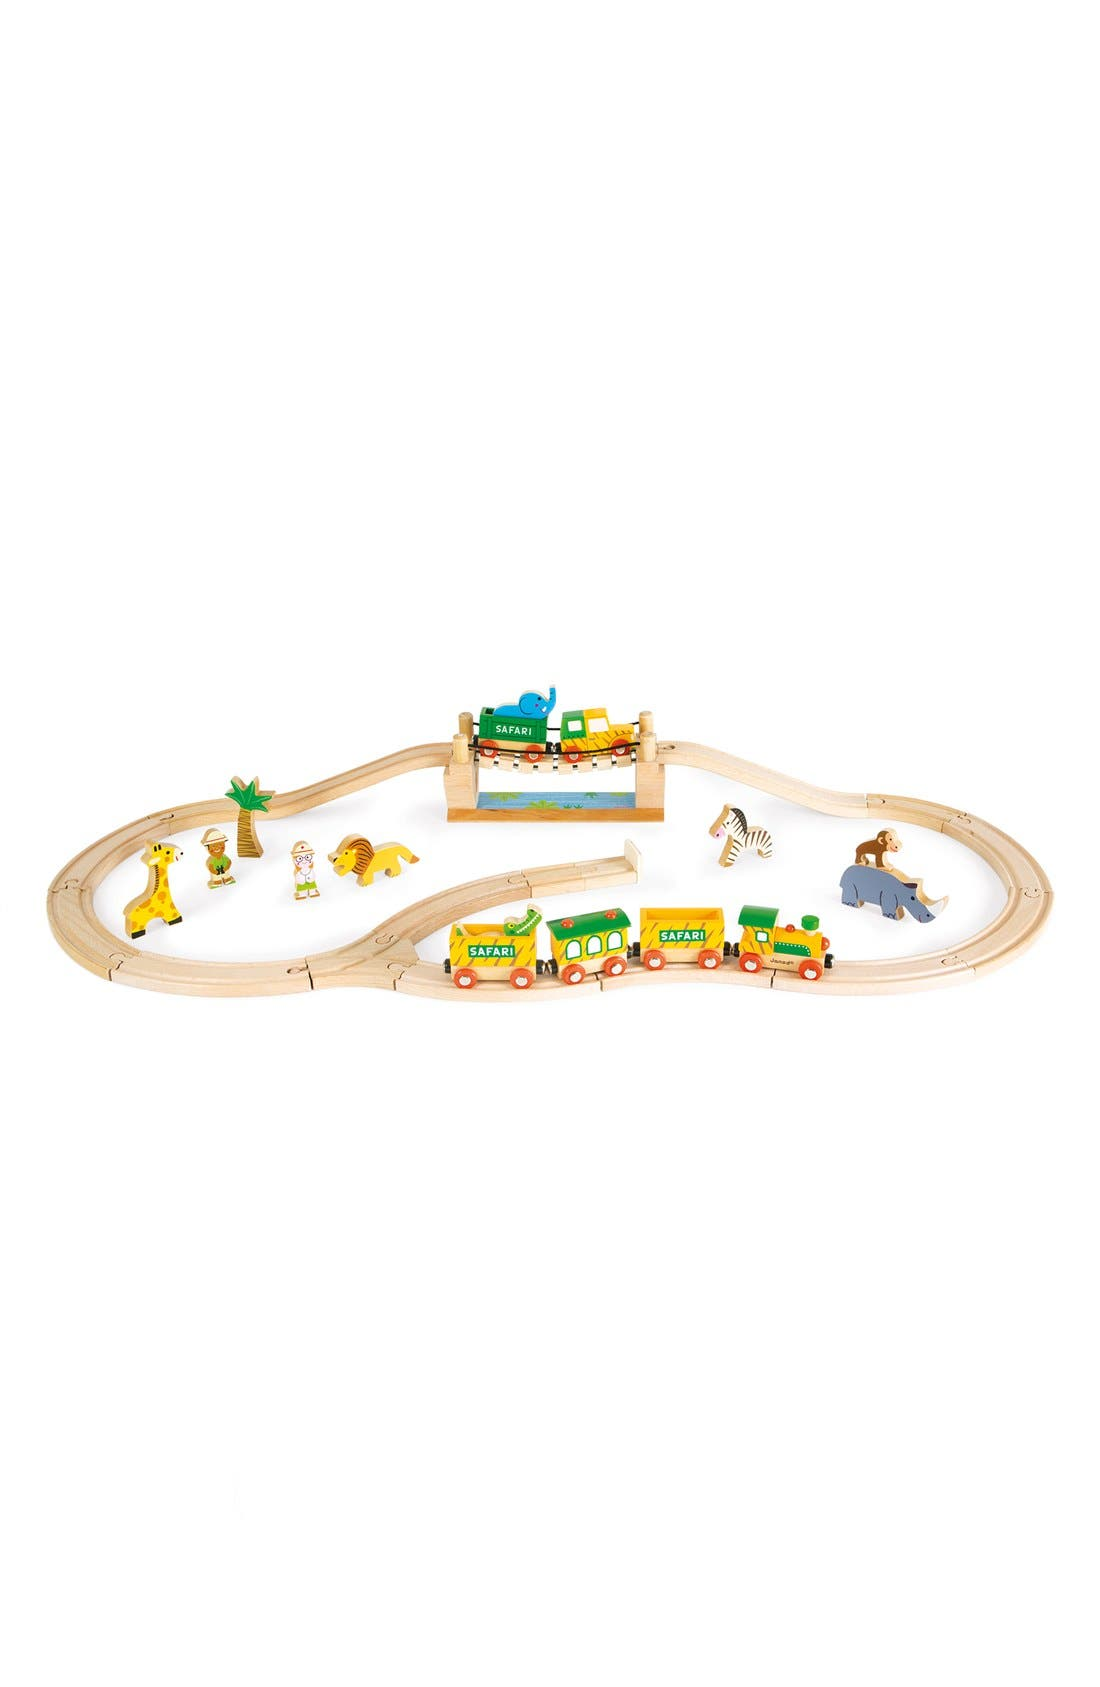 JANOD 'Story Express - Safari' Train Set